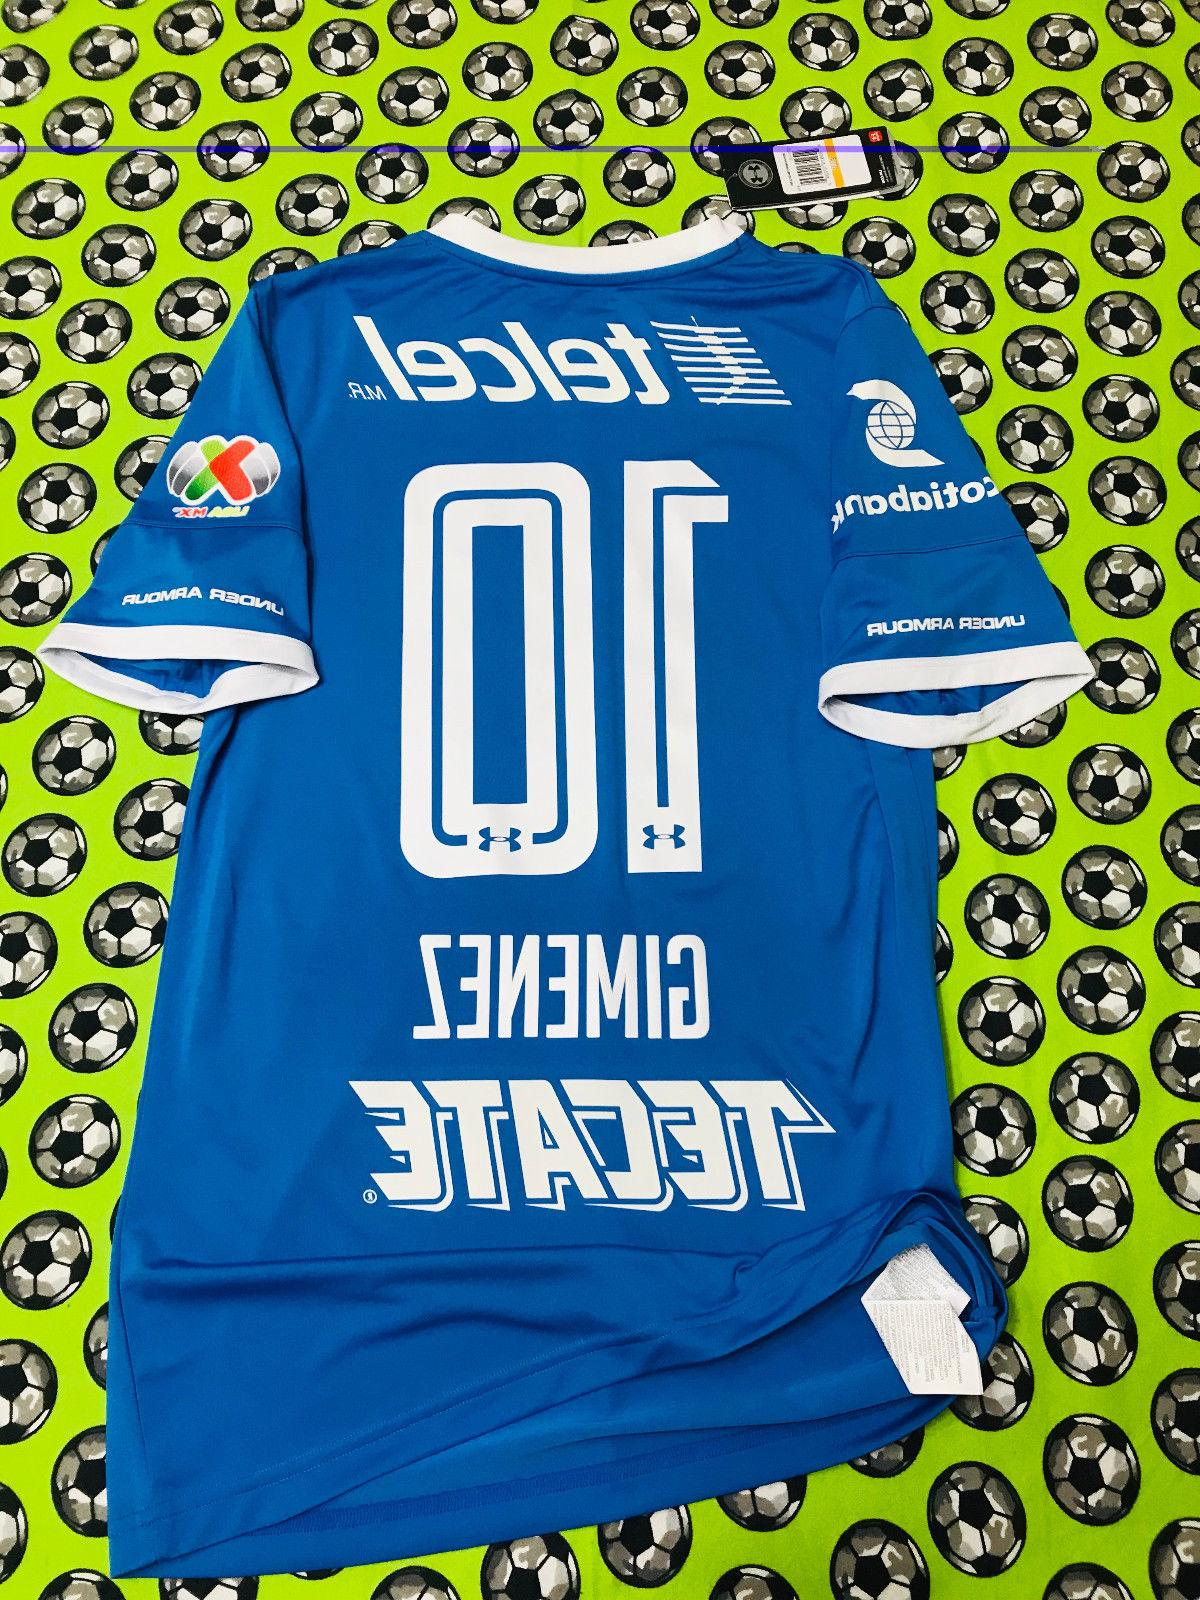 cruz azul home soccer football jersey 2016